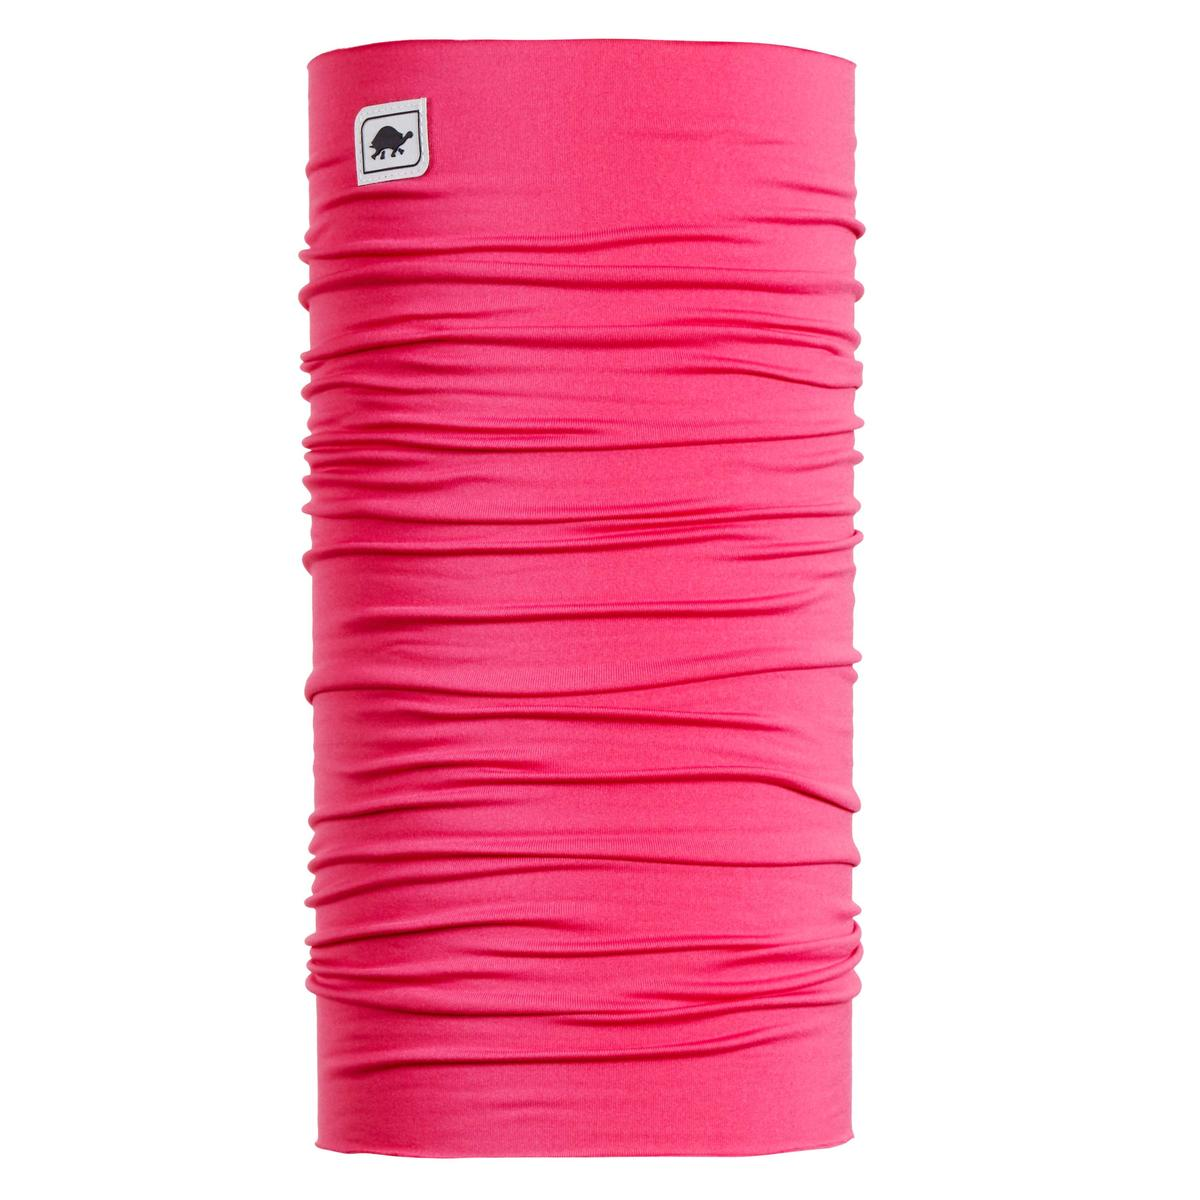 Turtle Fur Totally Tubular Comfort Shell Tube Neck Gaiter Pink About It - One Size